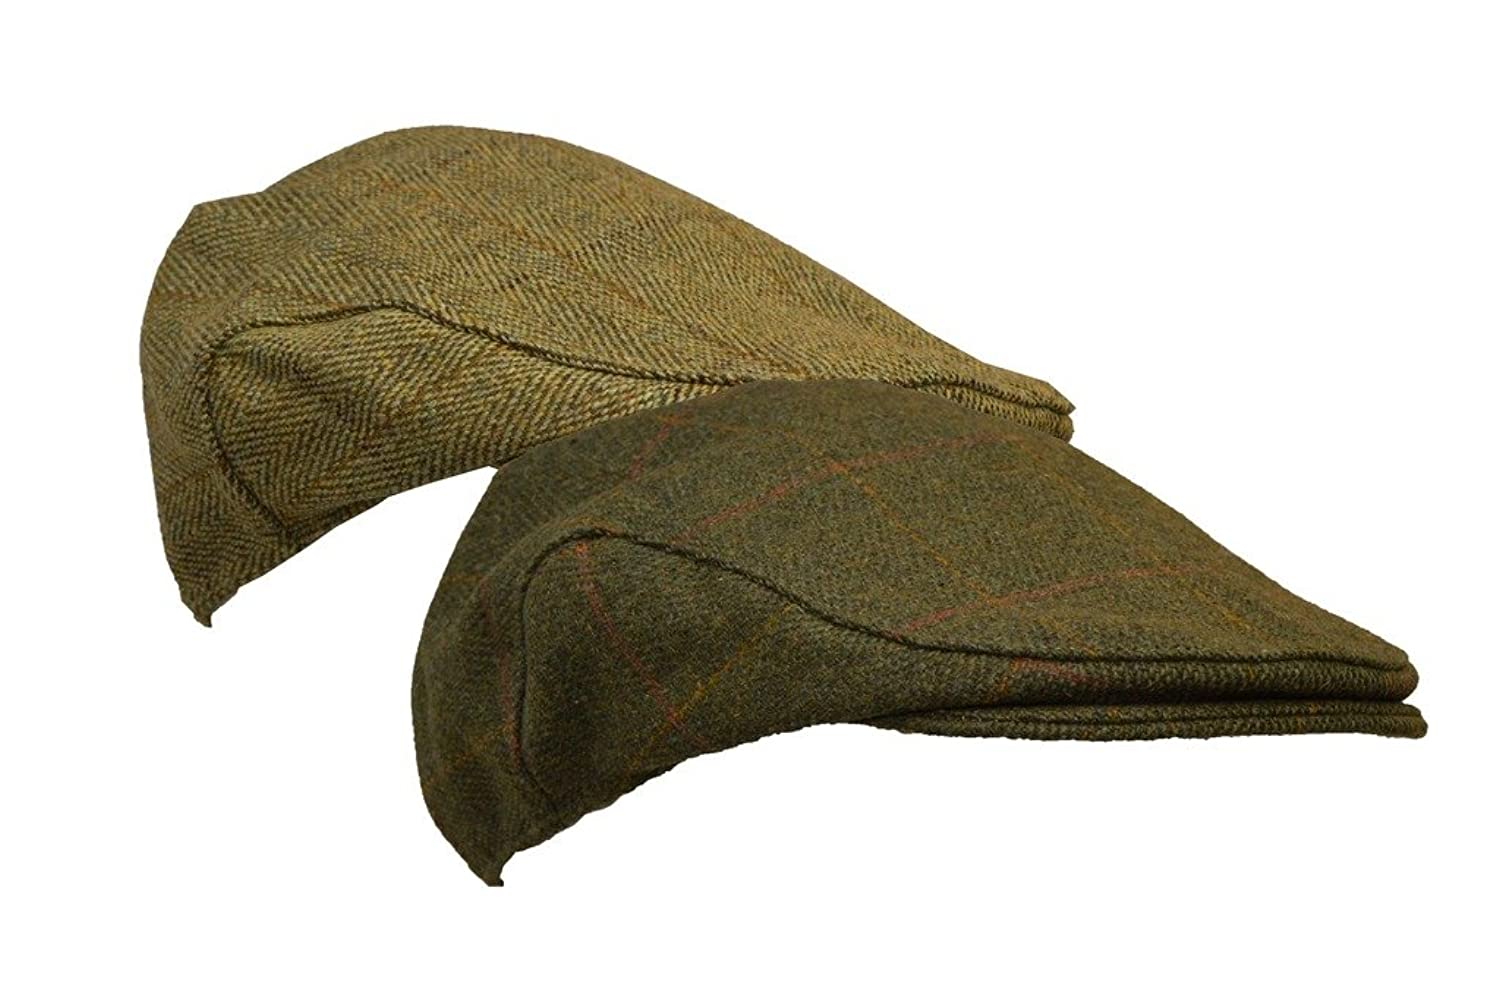 Men's Vintage Style Hats Derby Tweed Flat Cap Hunting Shooting Countrywear Hat $22.02 AT vintagedancer.com